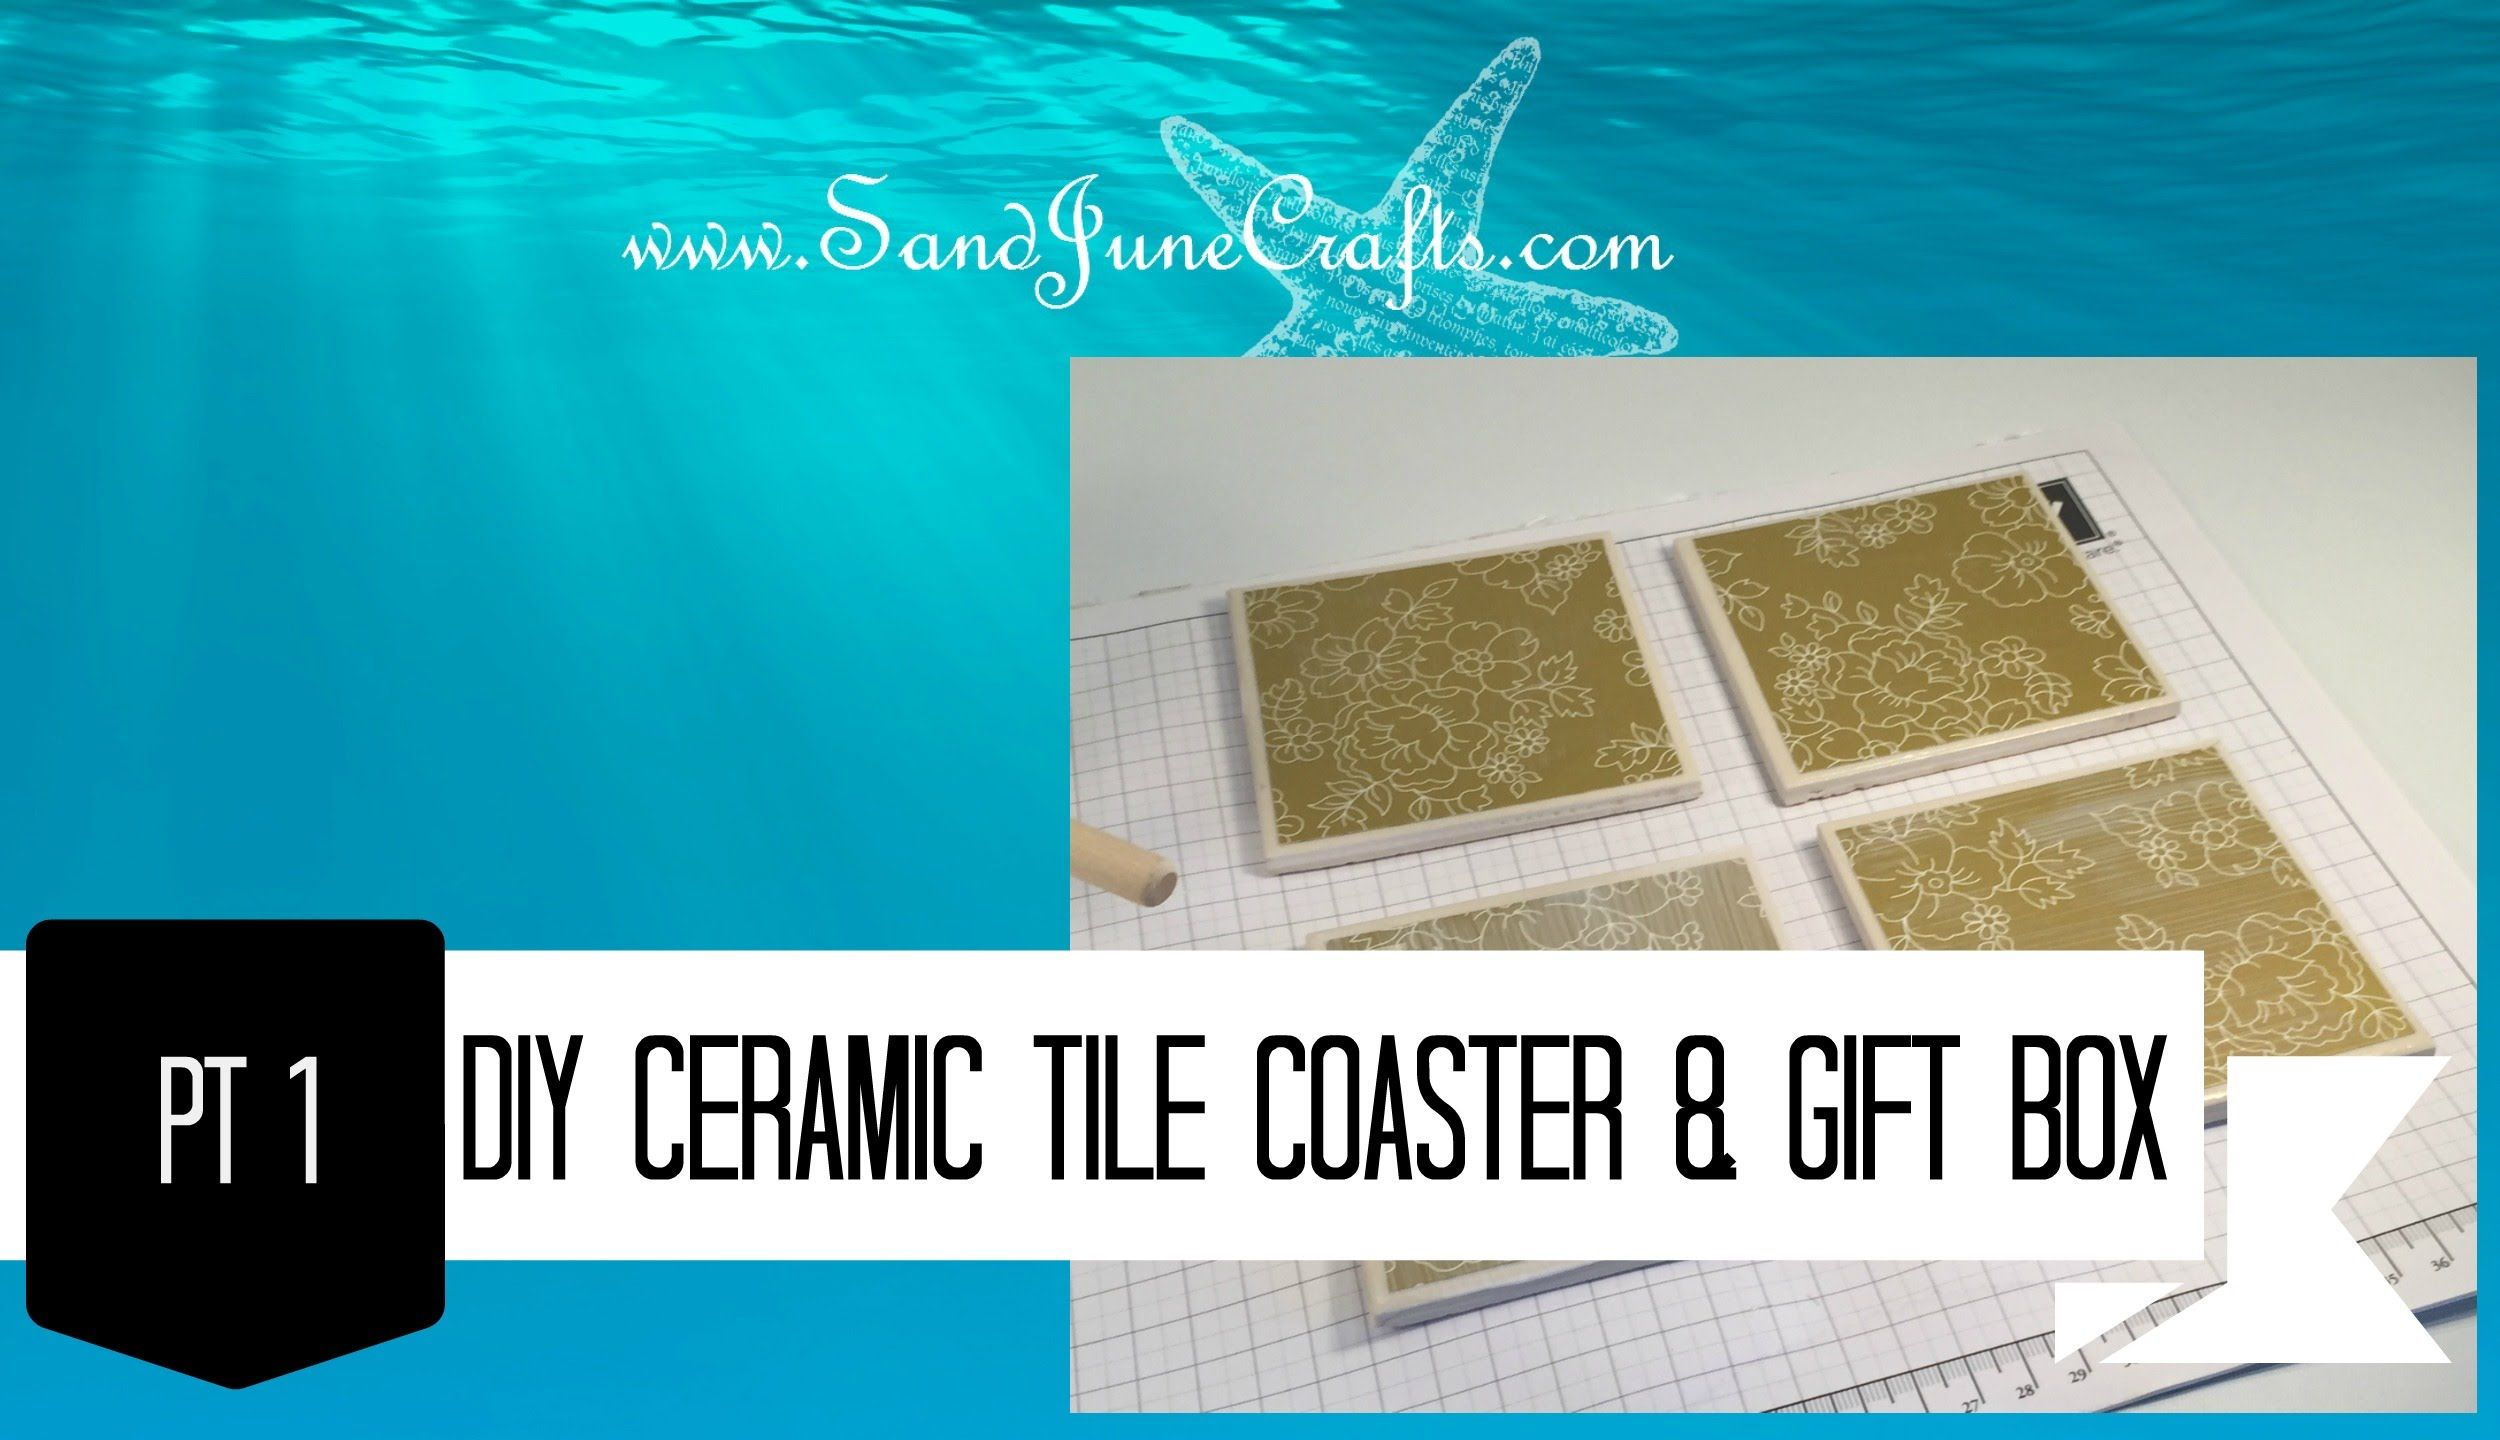 Make gift boxes for tile coasters pt 1in this video june shows make gift boxes for tile coasters pt this video june shows you how to make coasters using ceramic tiles from the hardware store and designer series paper dailygadgetfo Gallery